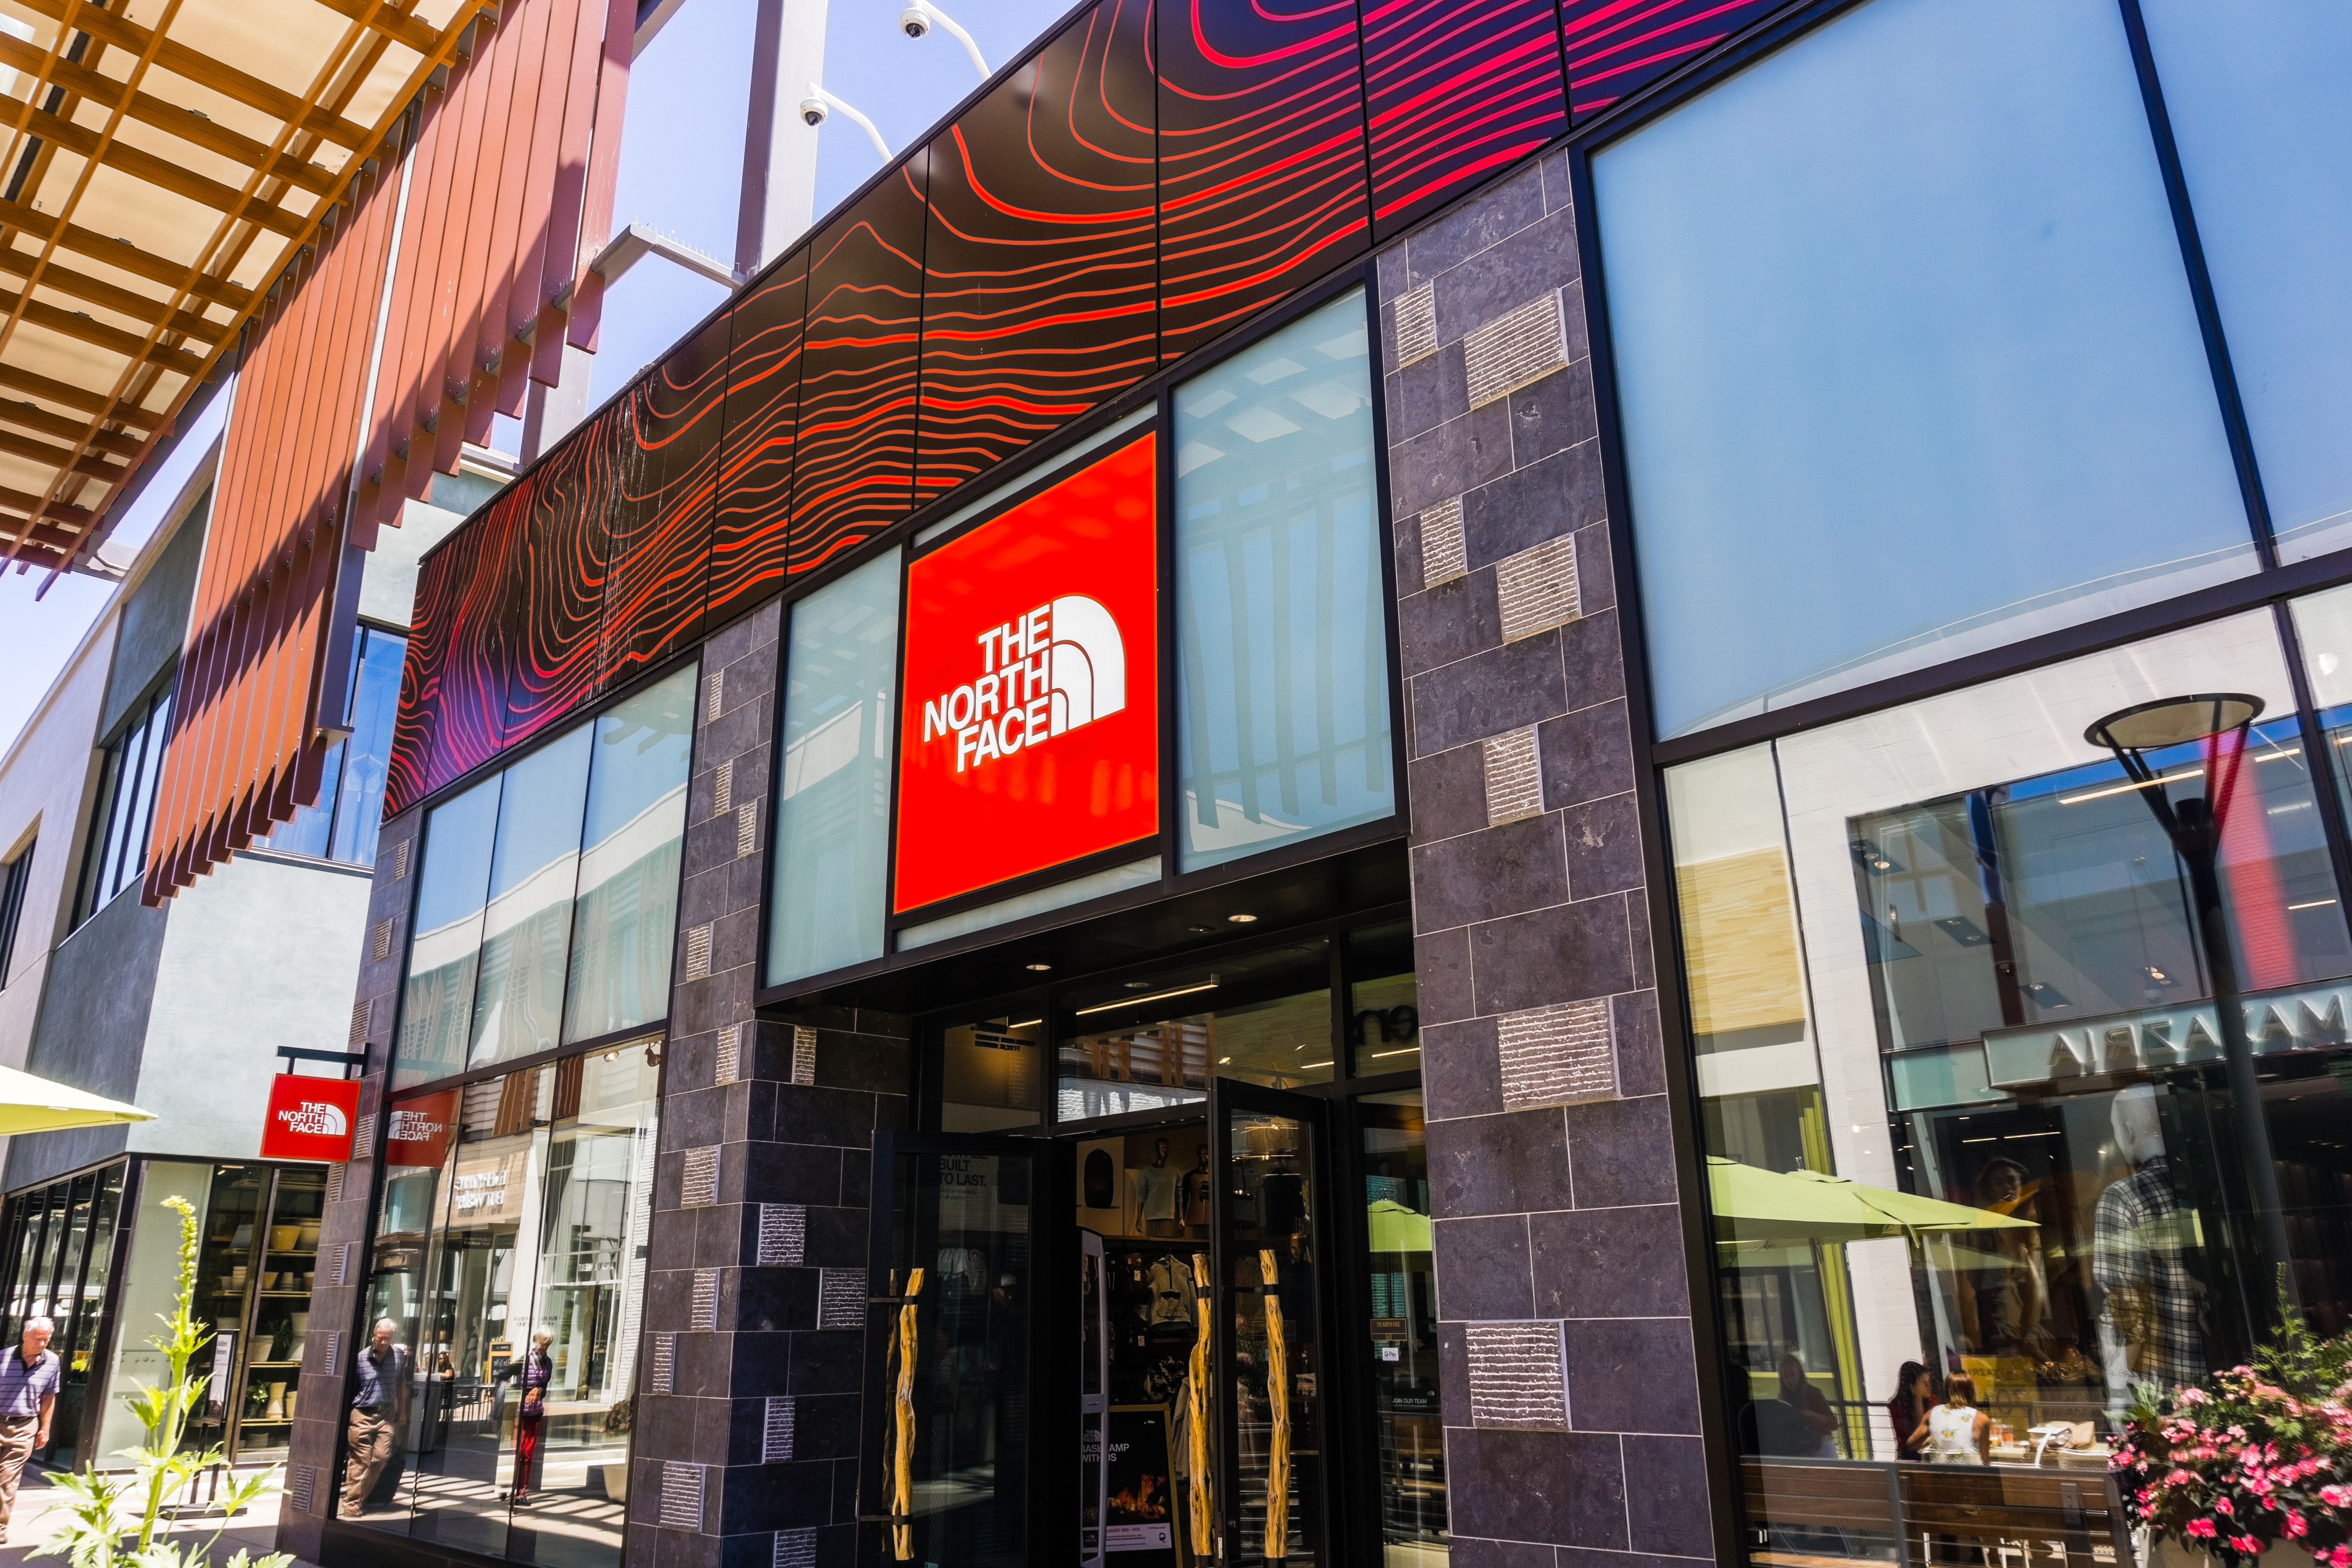 August 2, 2018 Palo Alto / CA / USA - The North Face store located in the upscale open air Stanford Shopping Mall, Silicon Valley, California